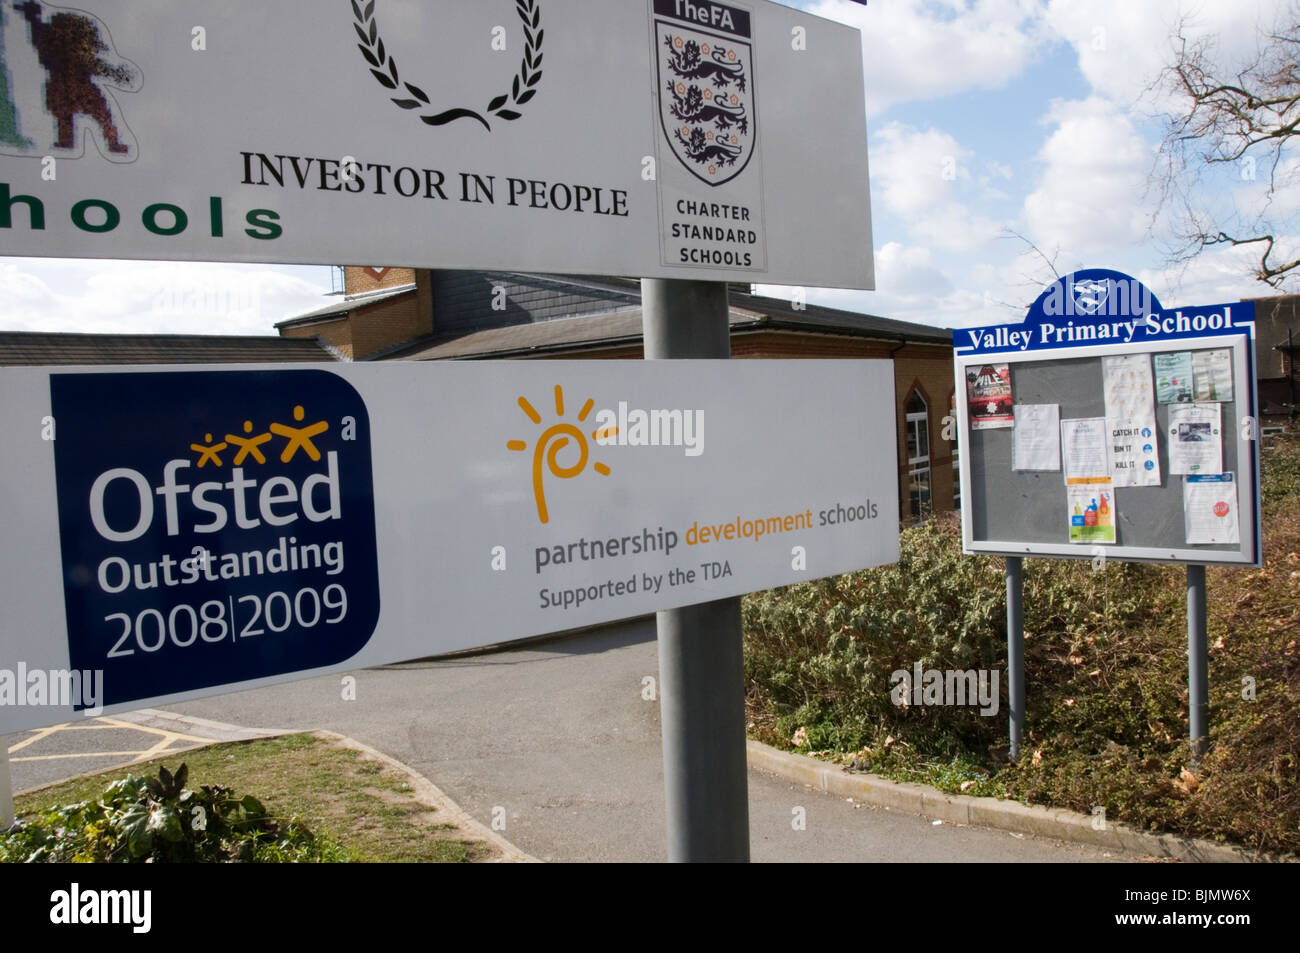 Valley Primary School, Shortlands, Bromley, Kent, England - Ofsted Outstanding - Stock Image